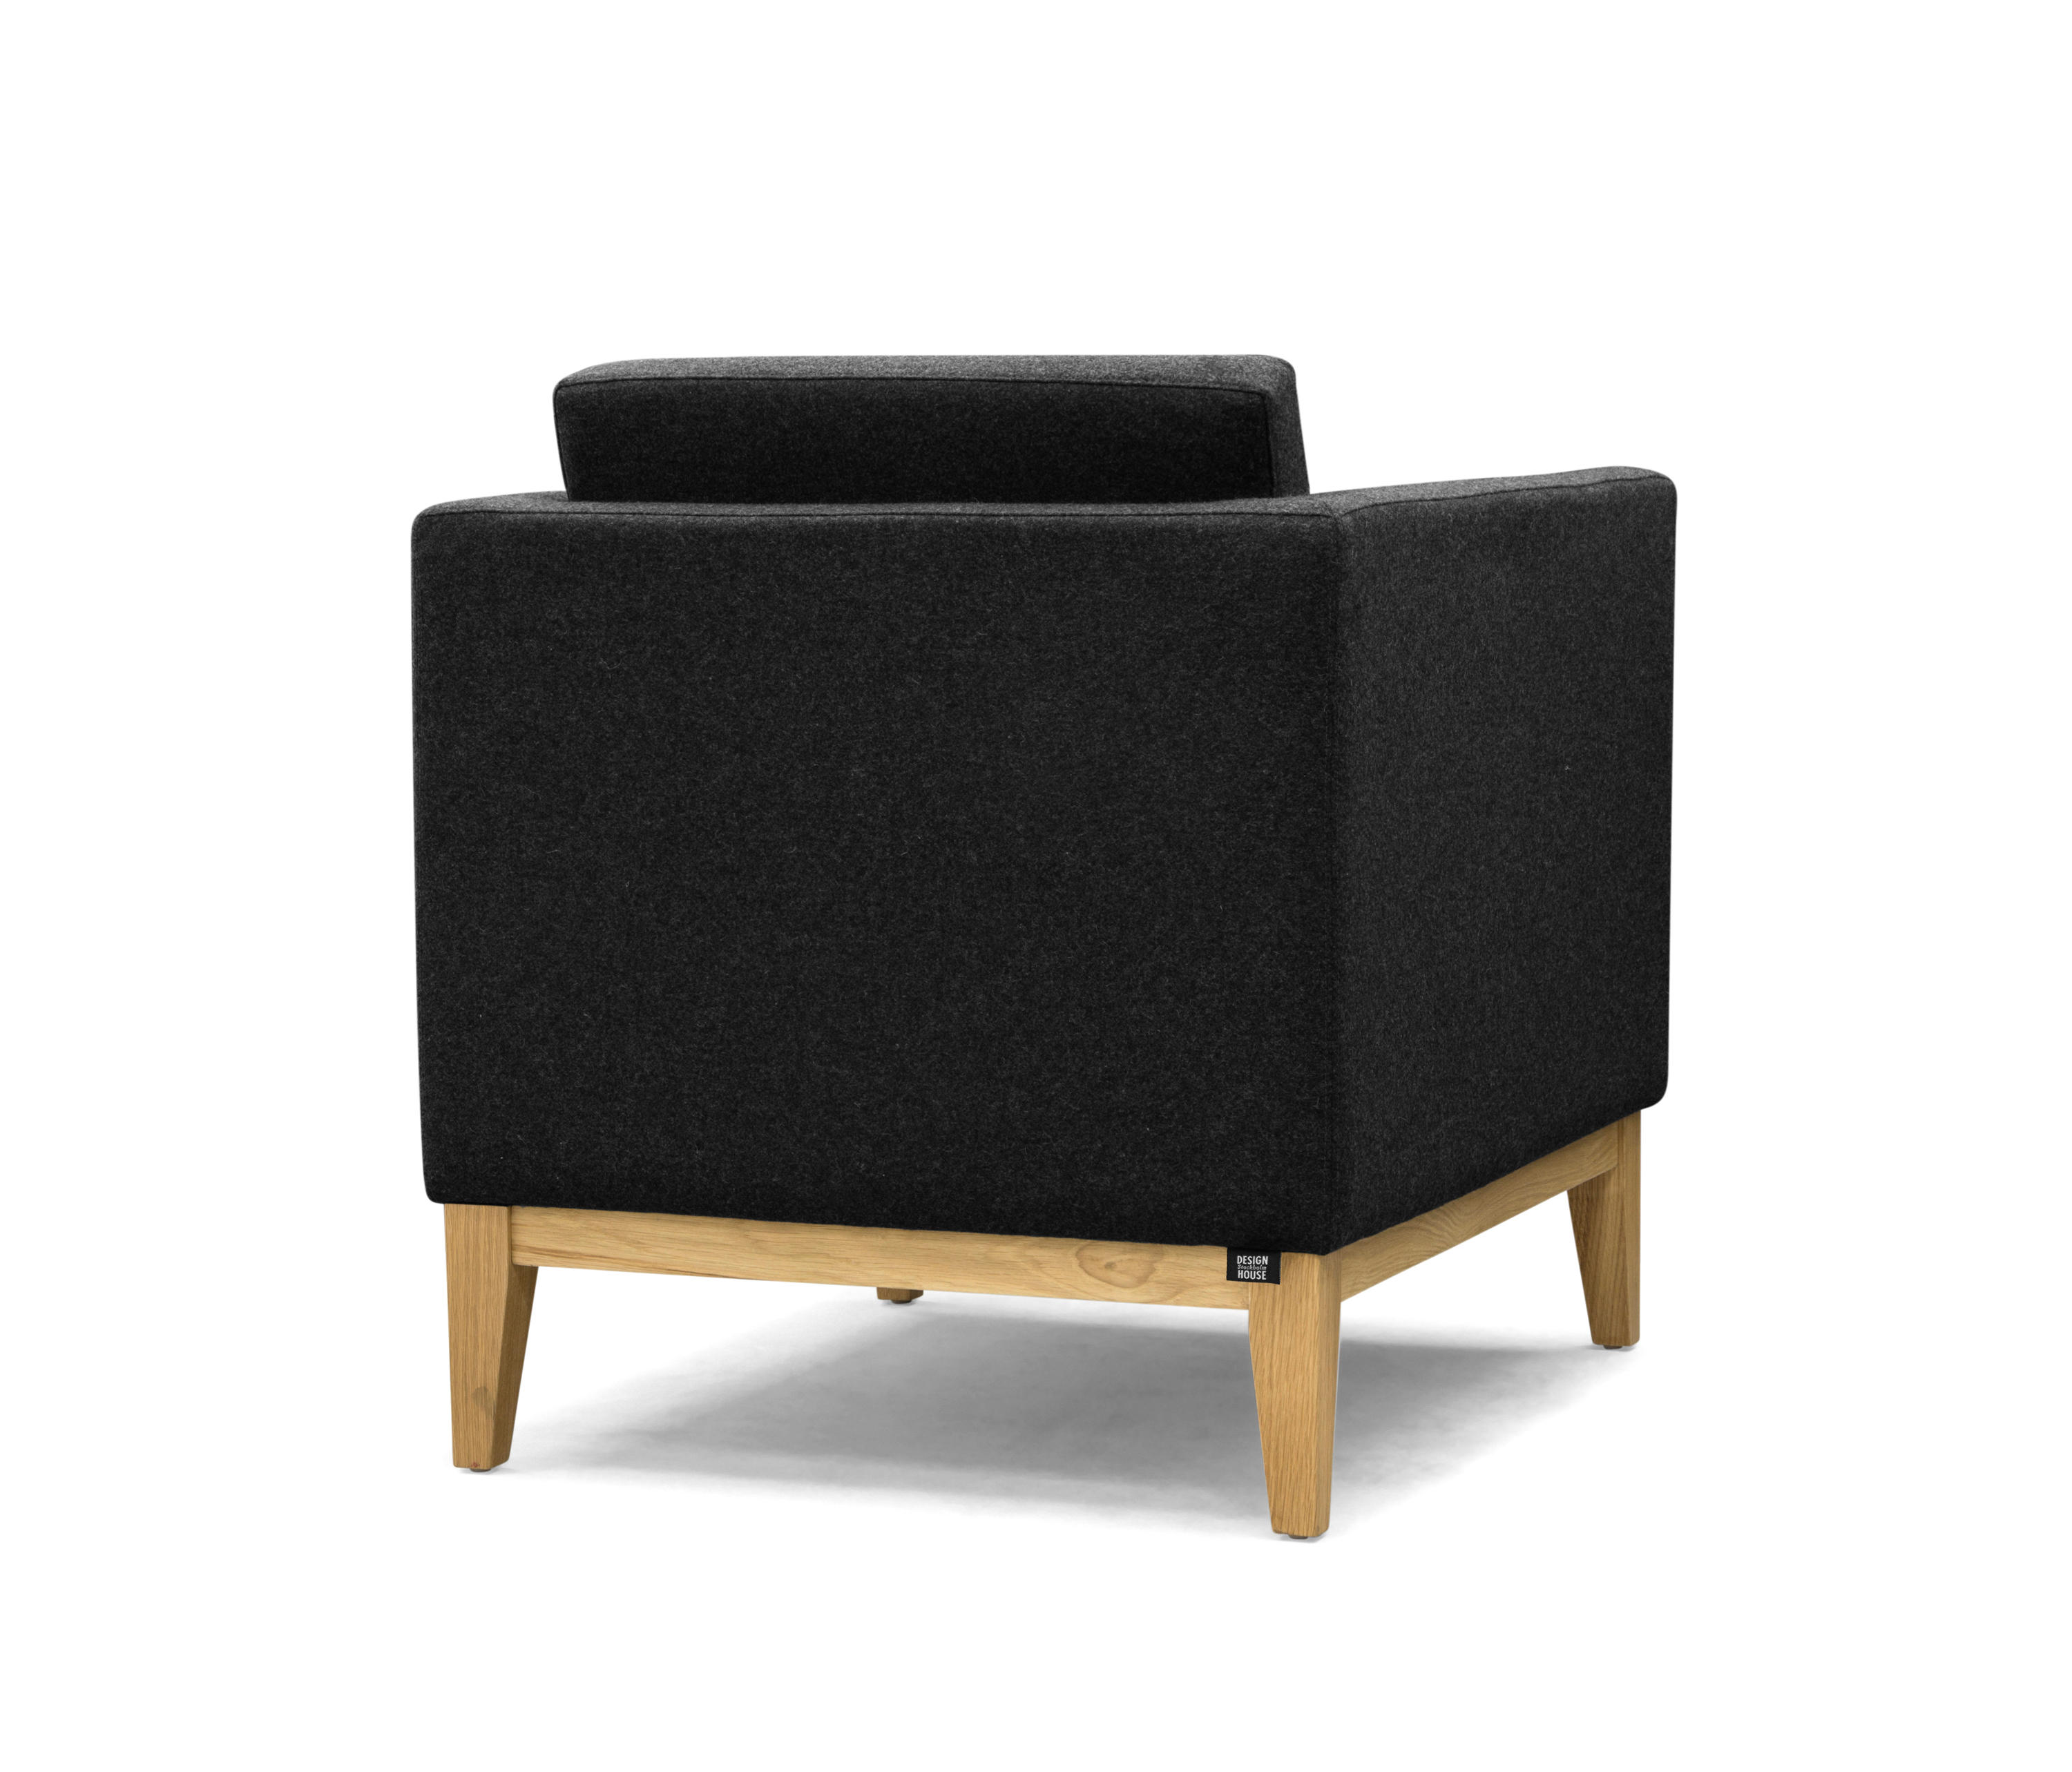 DAY ARMCHAIR Lounge chairs from Design House Stockholm Architonic